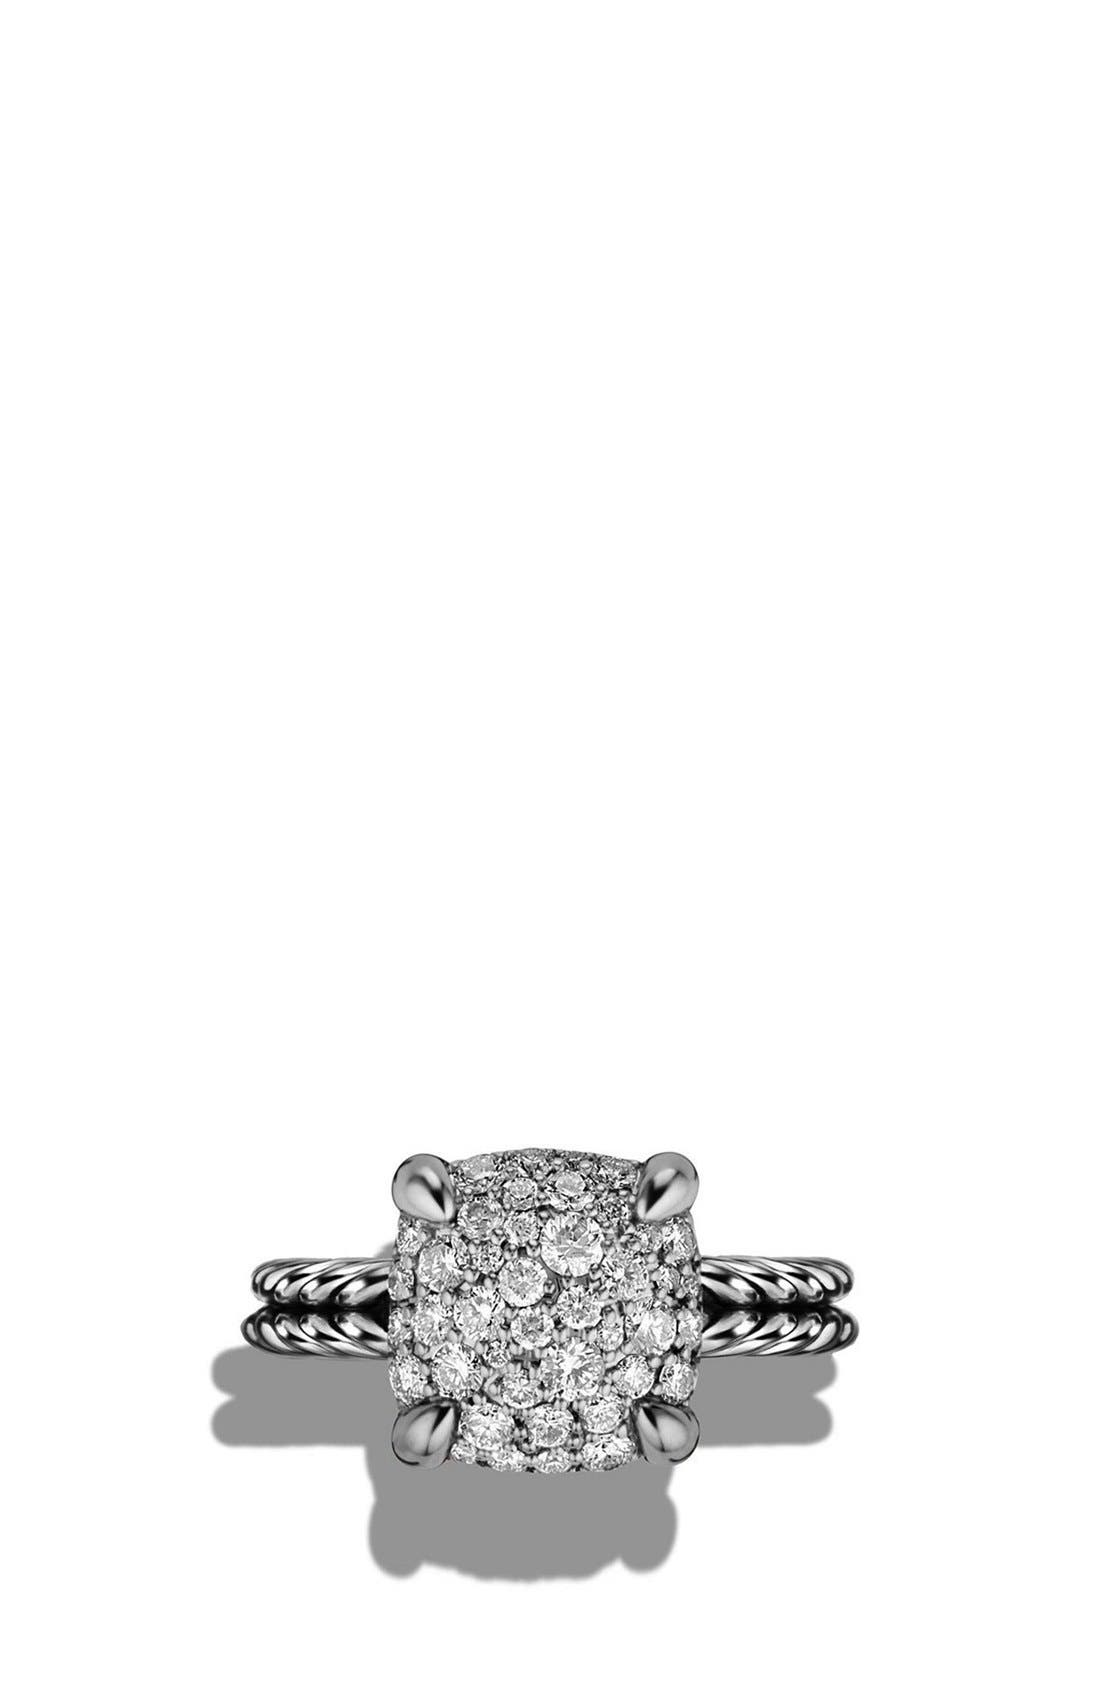 'Châtelaine' Ring with Diamonds,                             Alternate thumbnail 7, color,                             SILVER